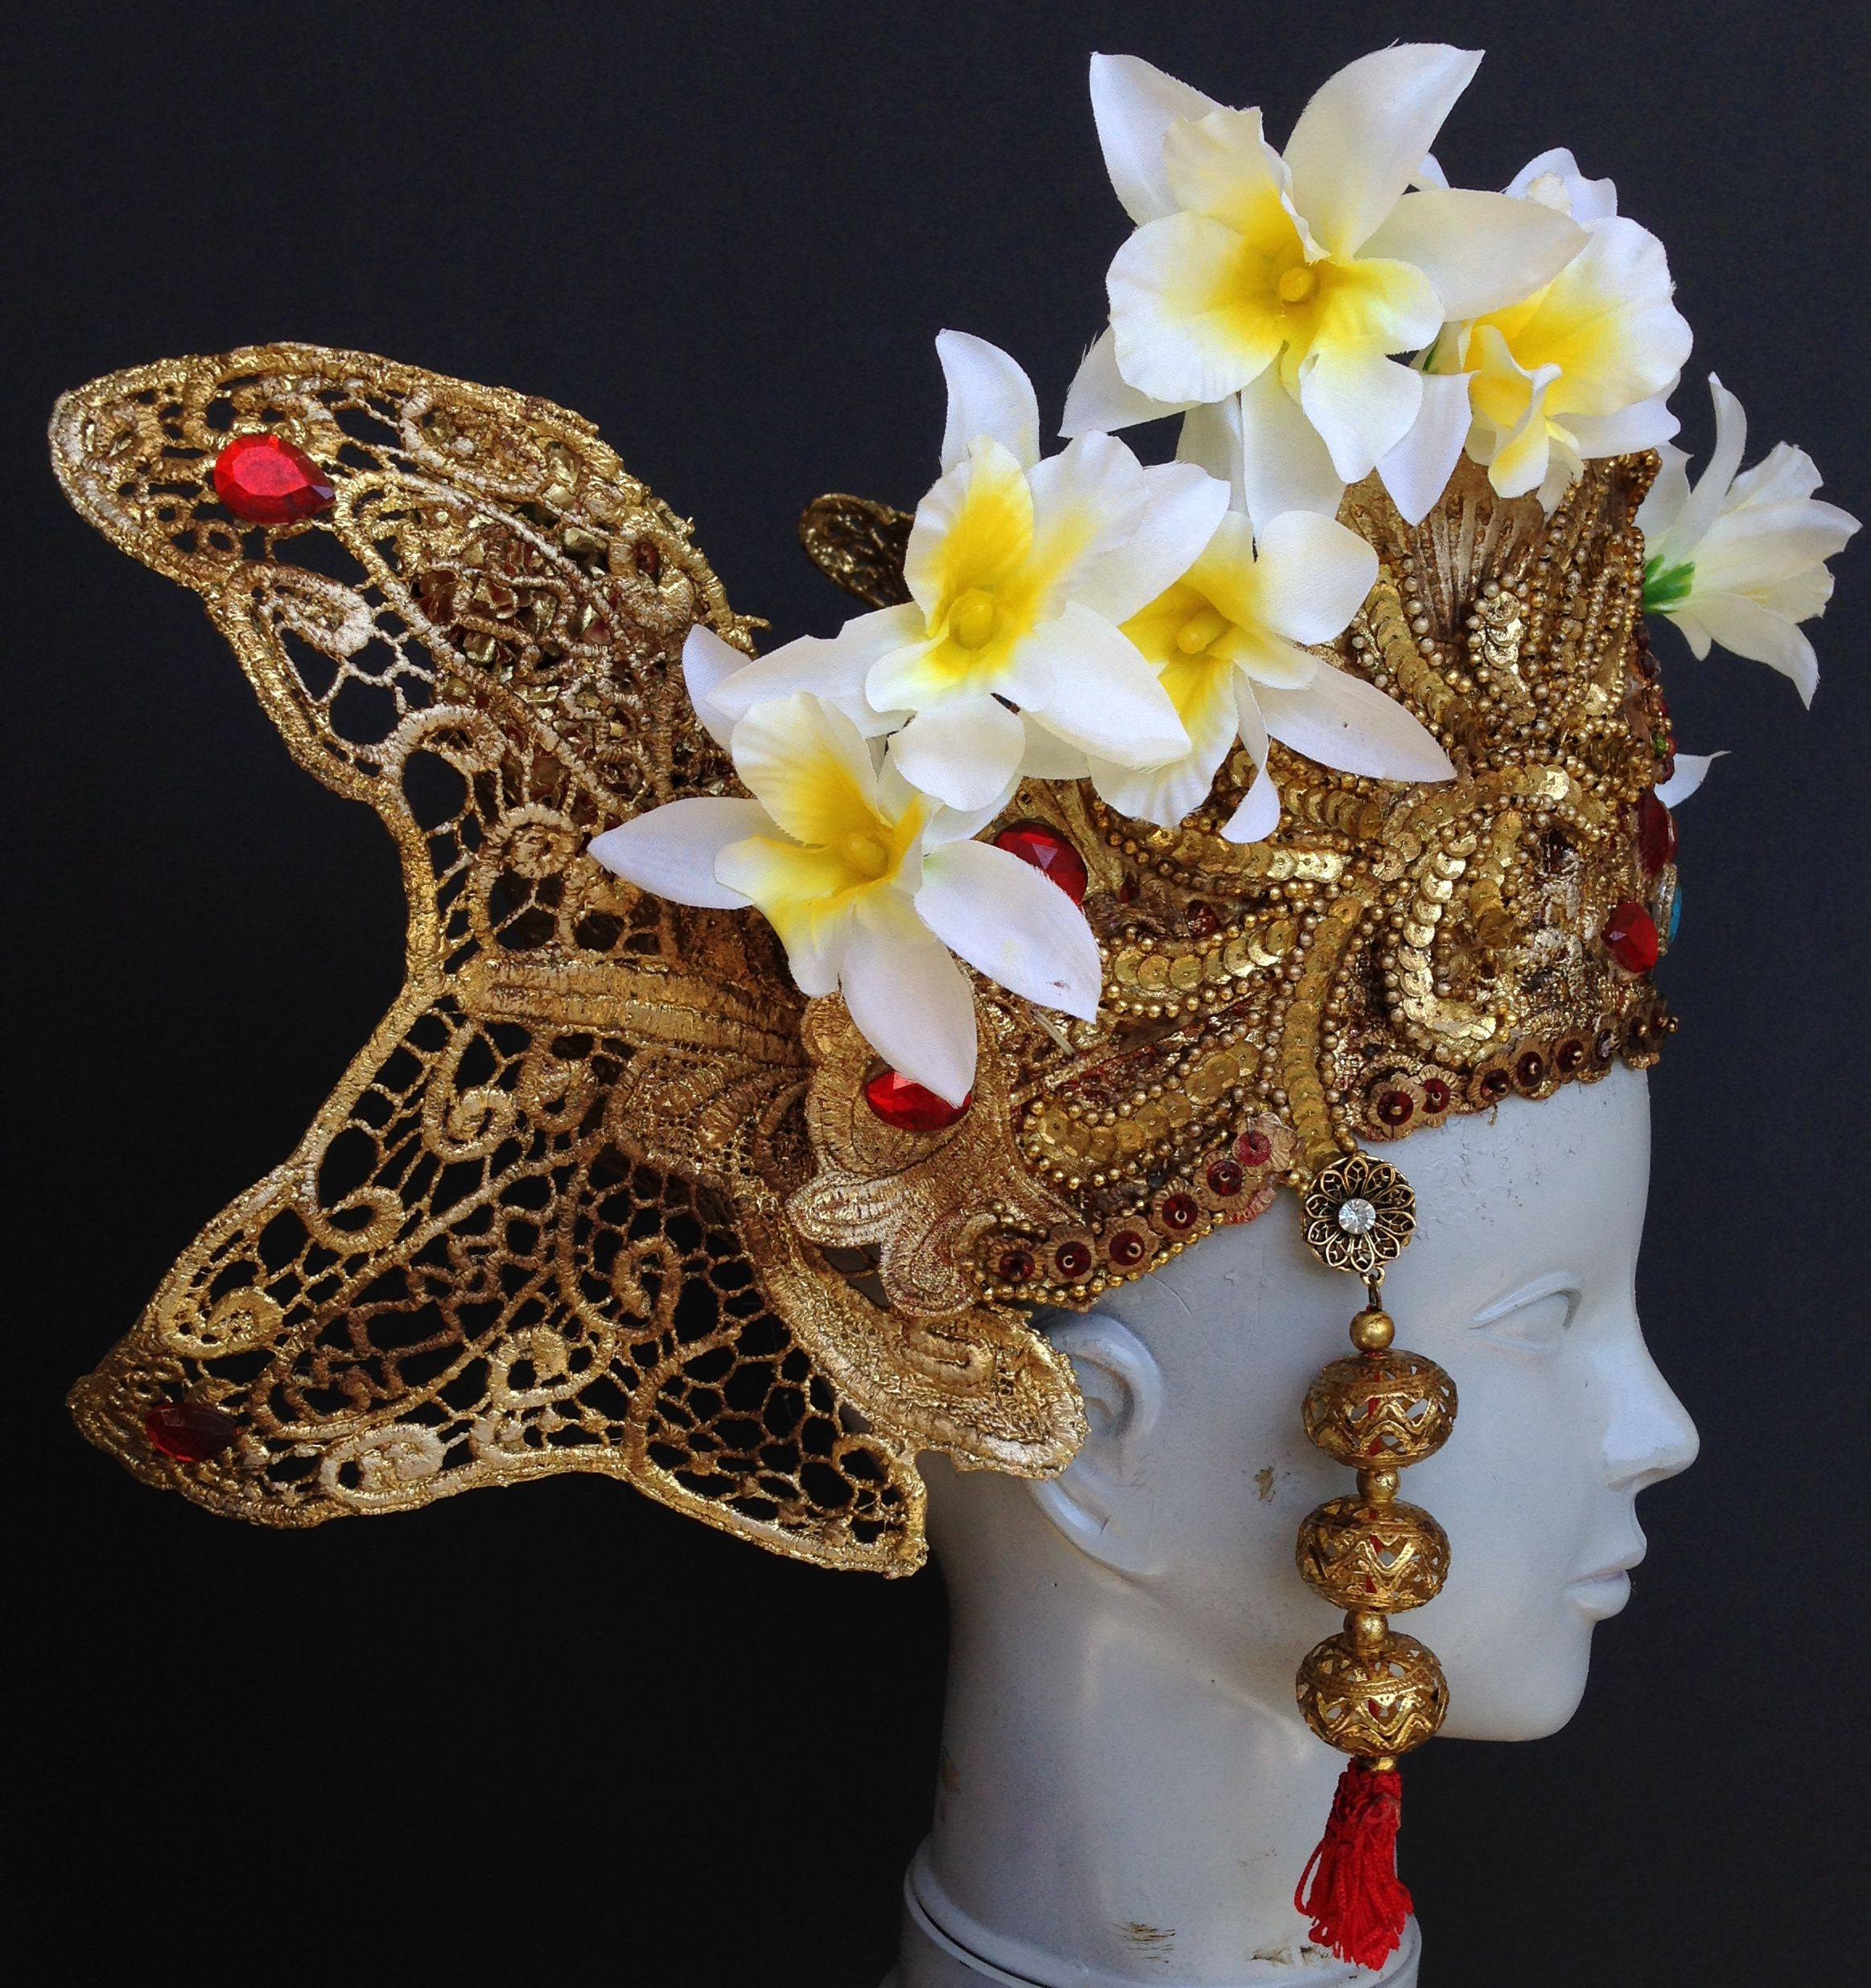 Kristine Berg. Indonesian Dancer head dress made for a commercial. Plastic doilies, lace, paint, rhinestones, fake flowers, found objects.